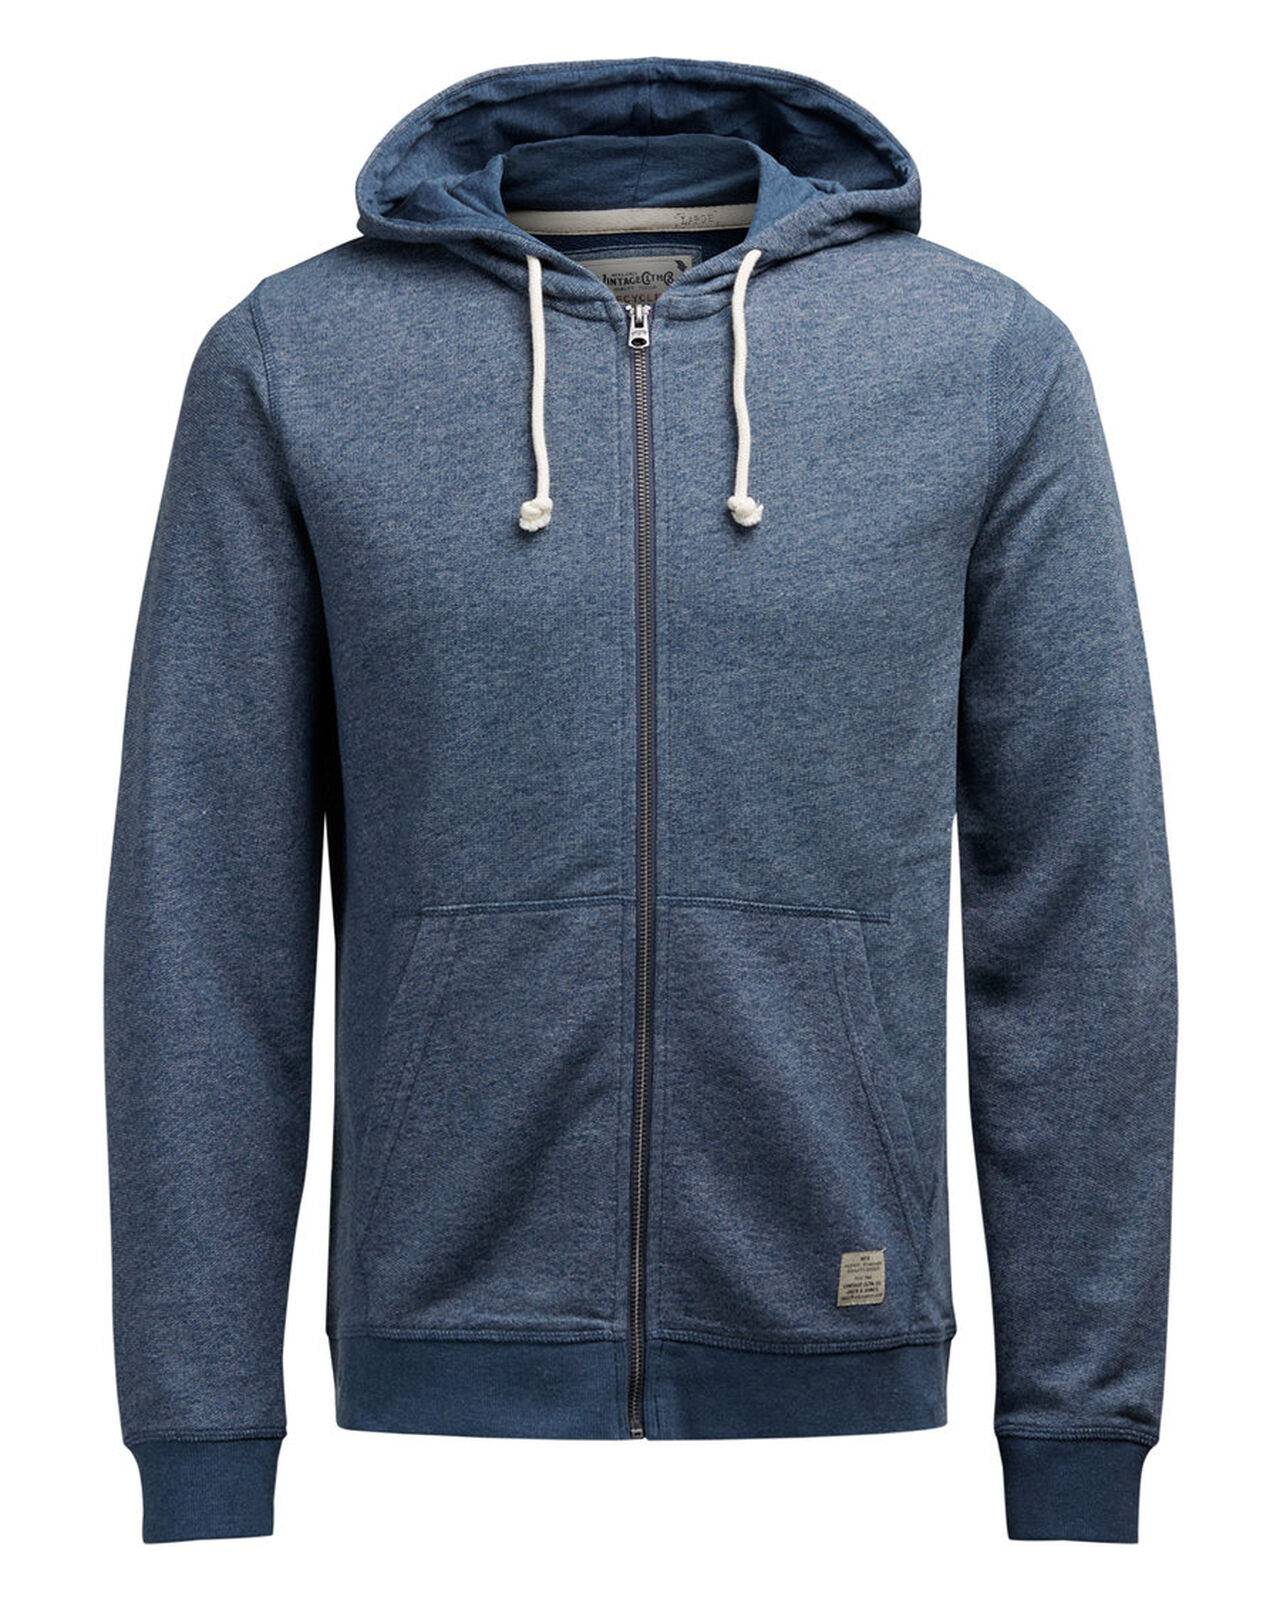 JACK & JONES Hooded Zip Through Sweatshirt Men Blue BlueWingTeal